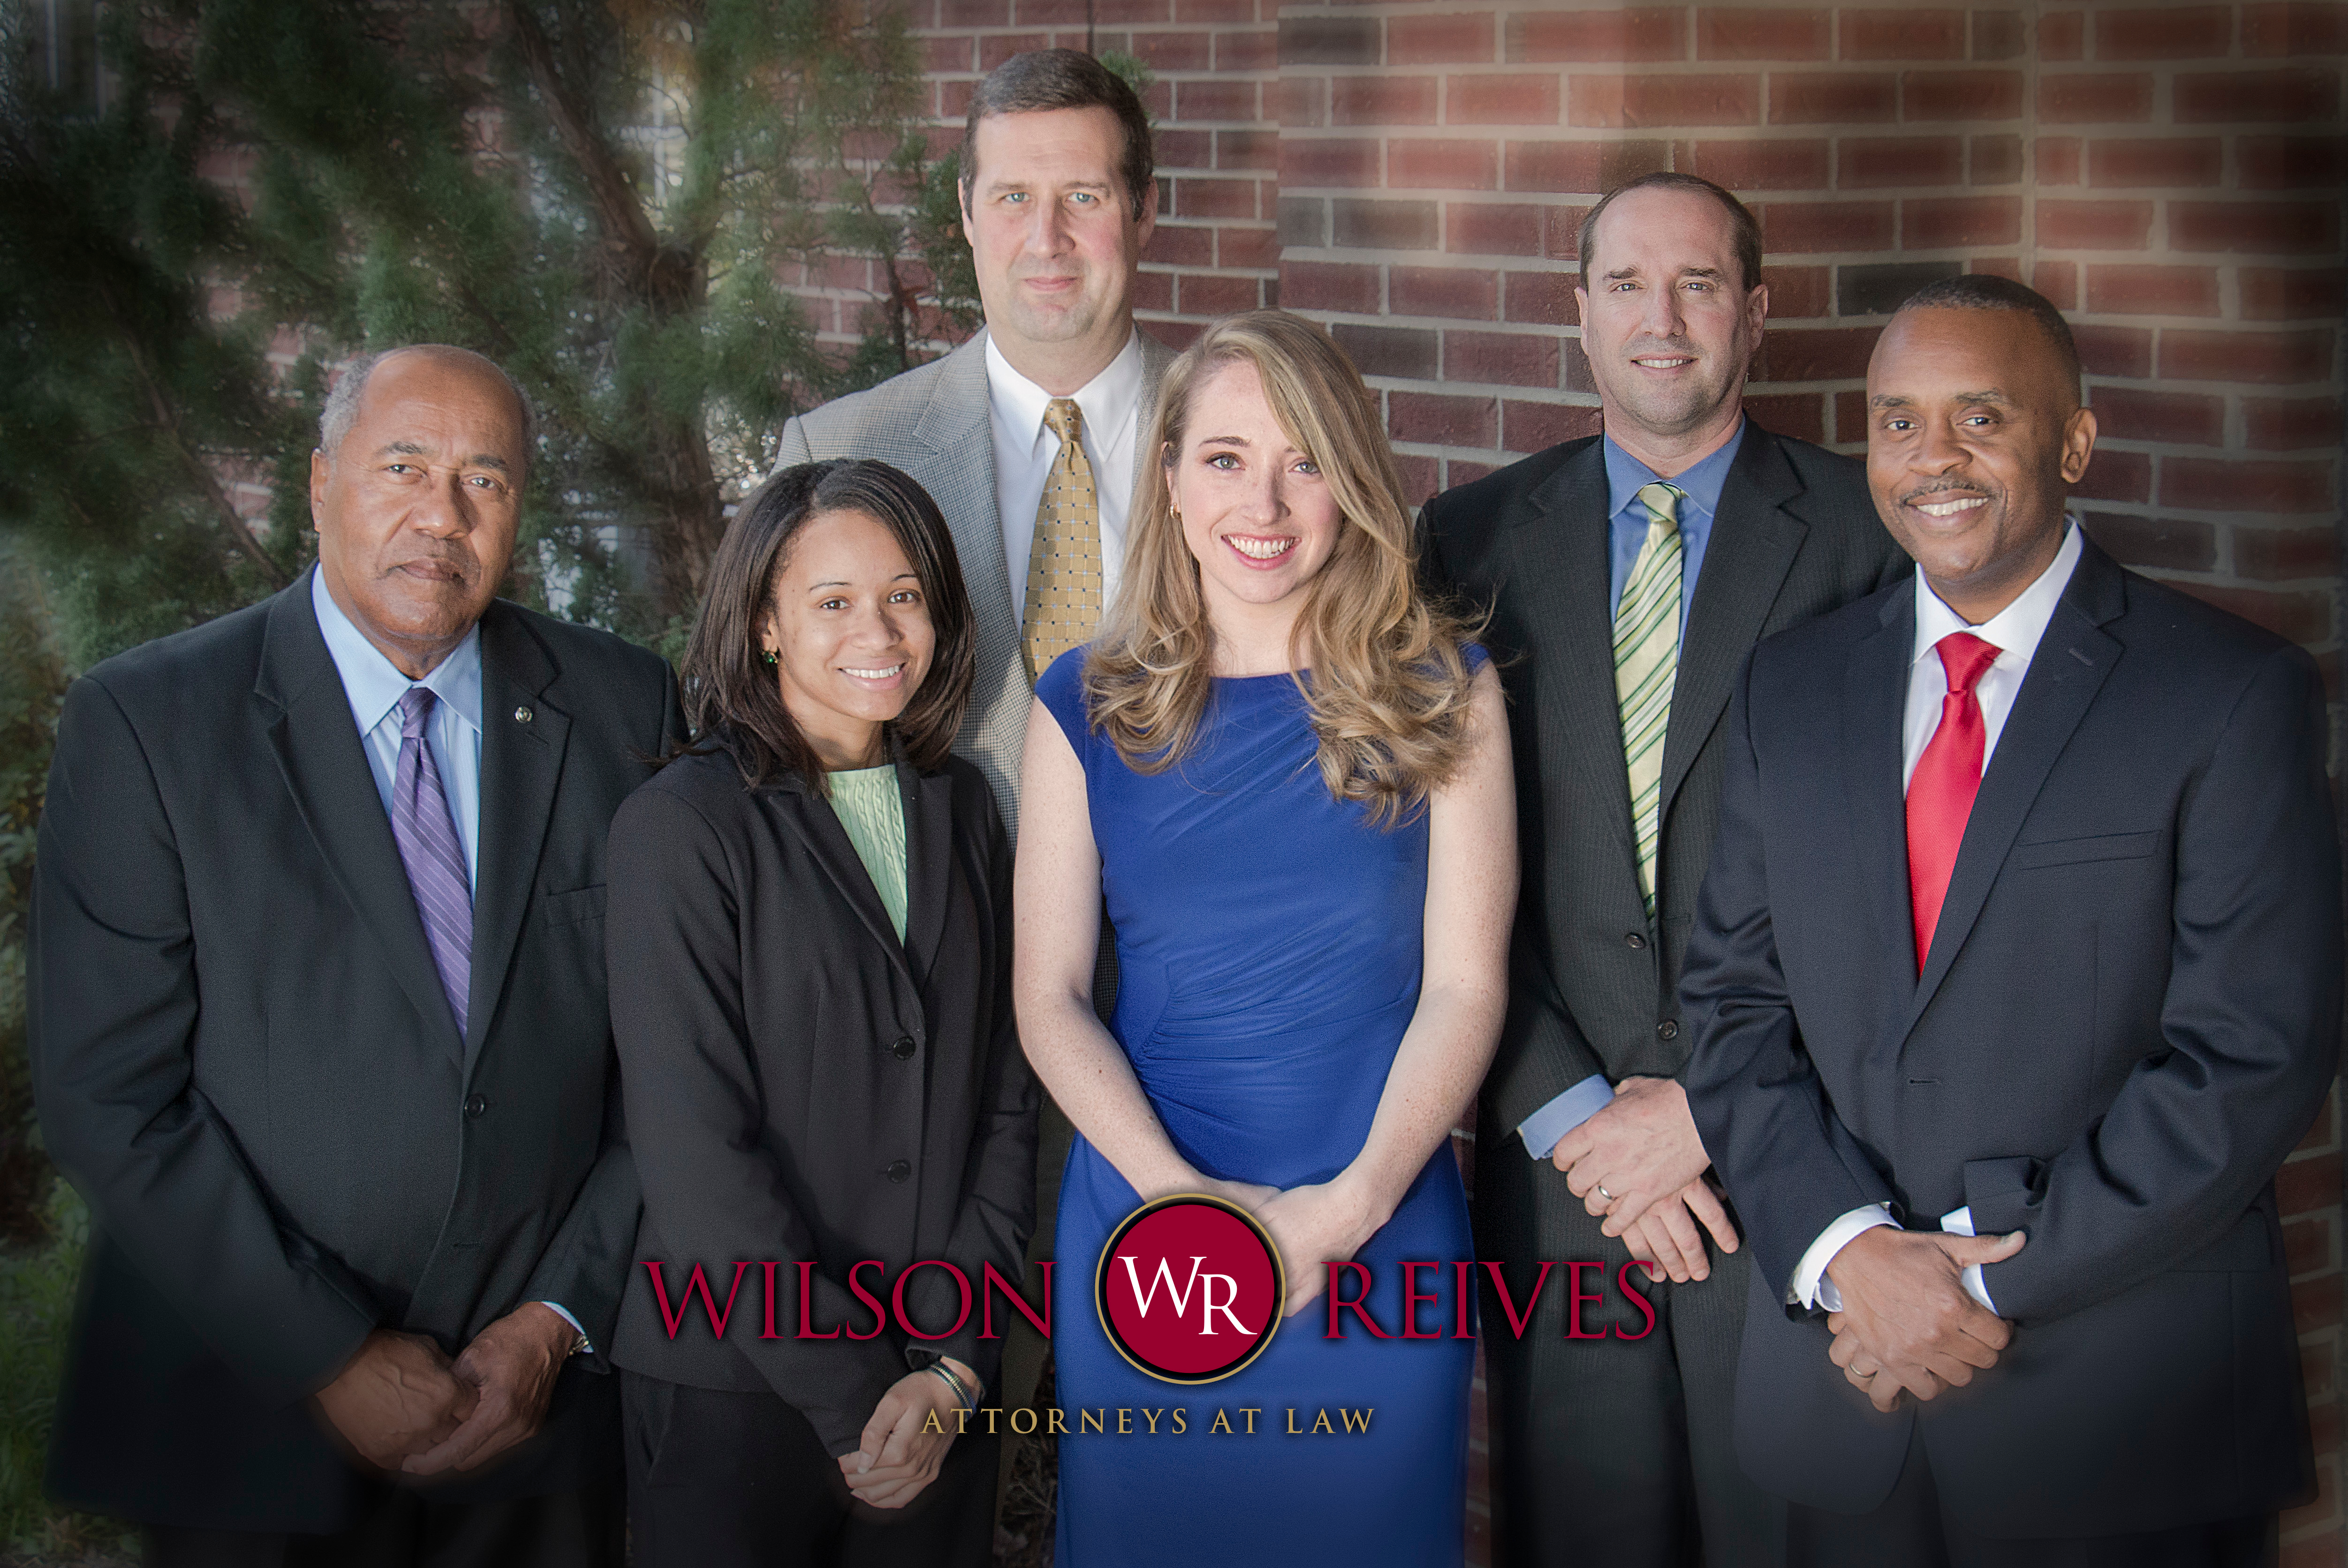 Wilson, Reives & Silverman Attorneys At Law image 0